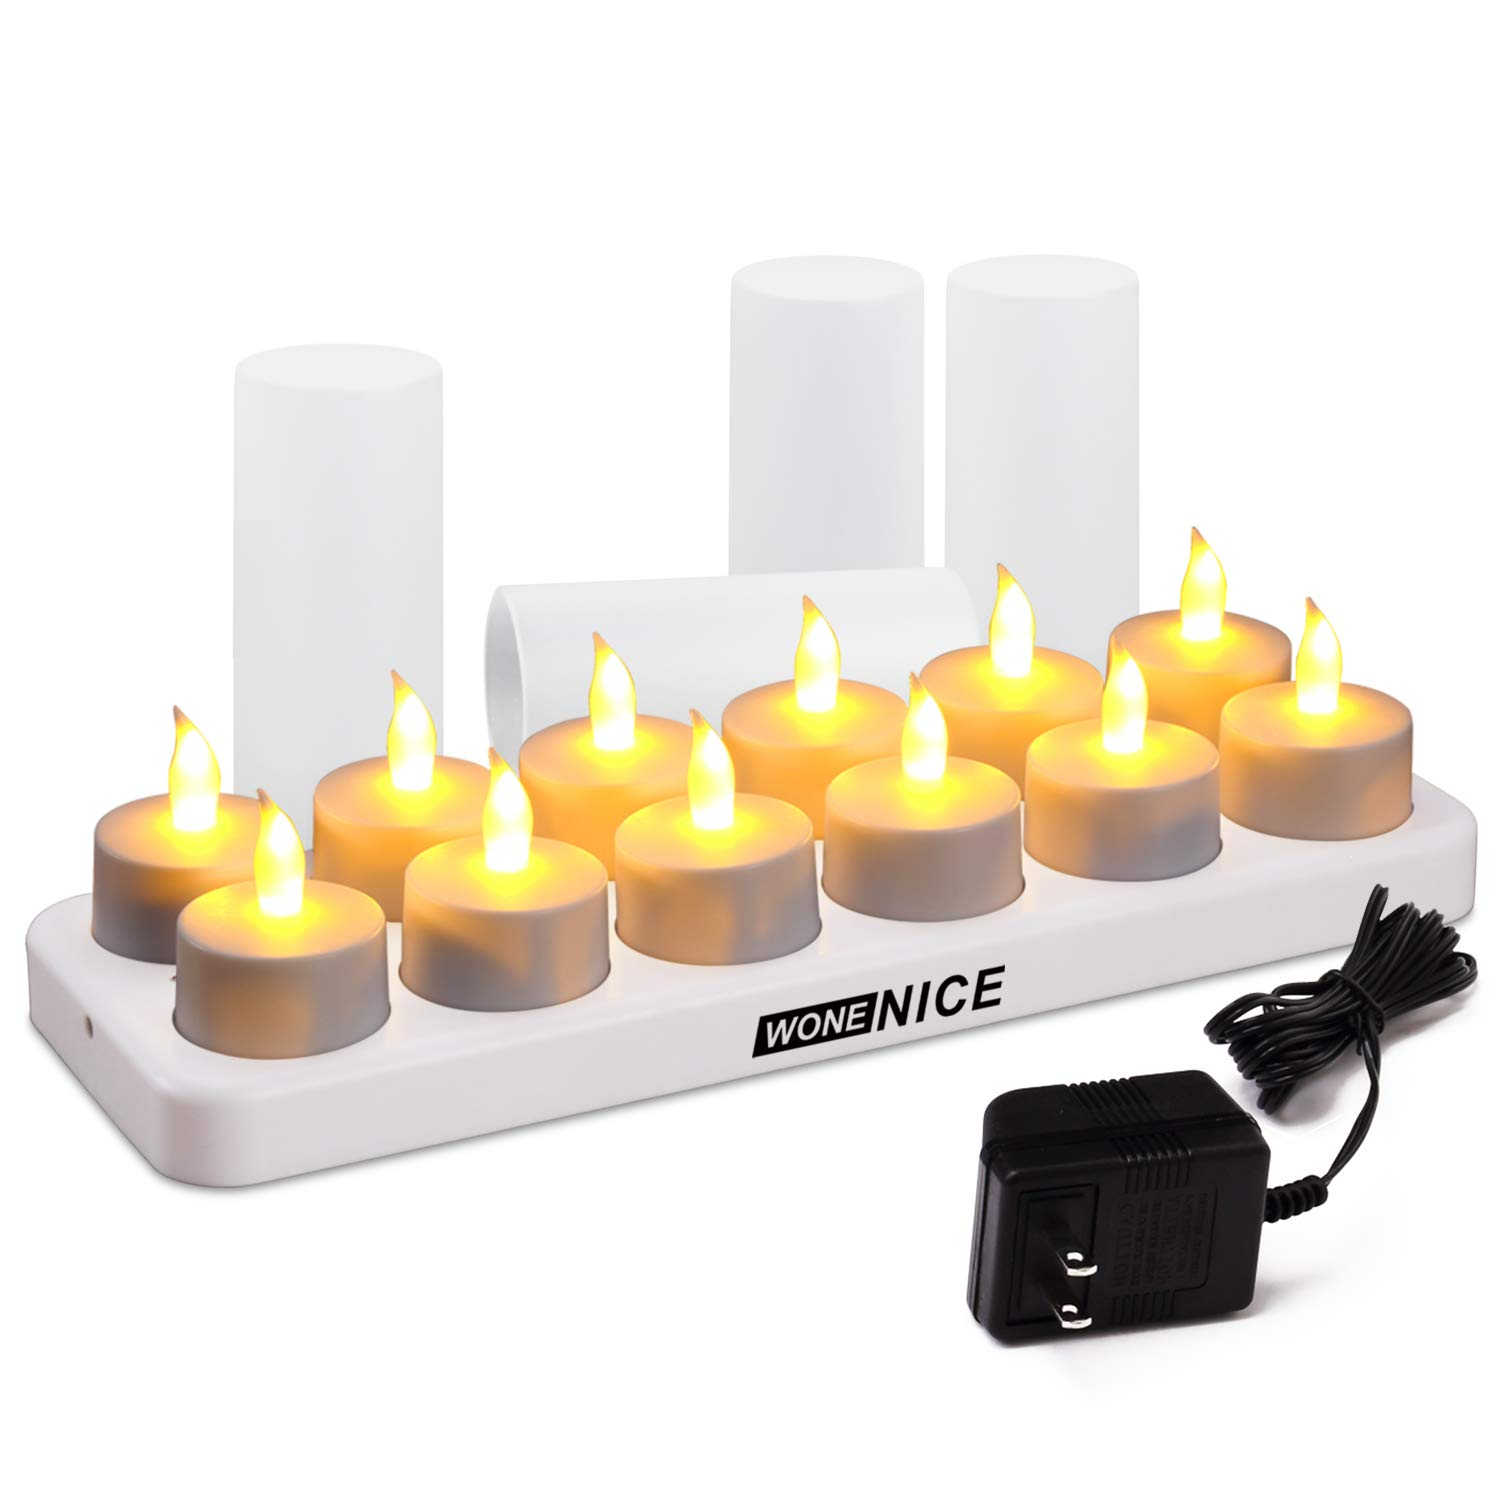 WoneNice Rechargeable Tea Light Flickering Tealight Candles With Holders, Decorationa for Christmas, Parties, Events, Weddings- (No Batteries Necessary)- White Base (Set of 12) by WoneNice